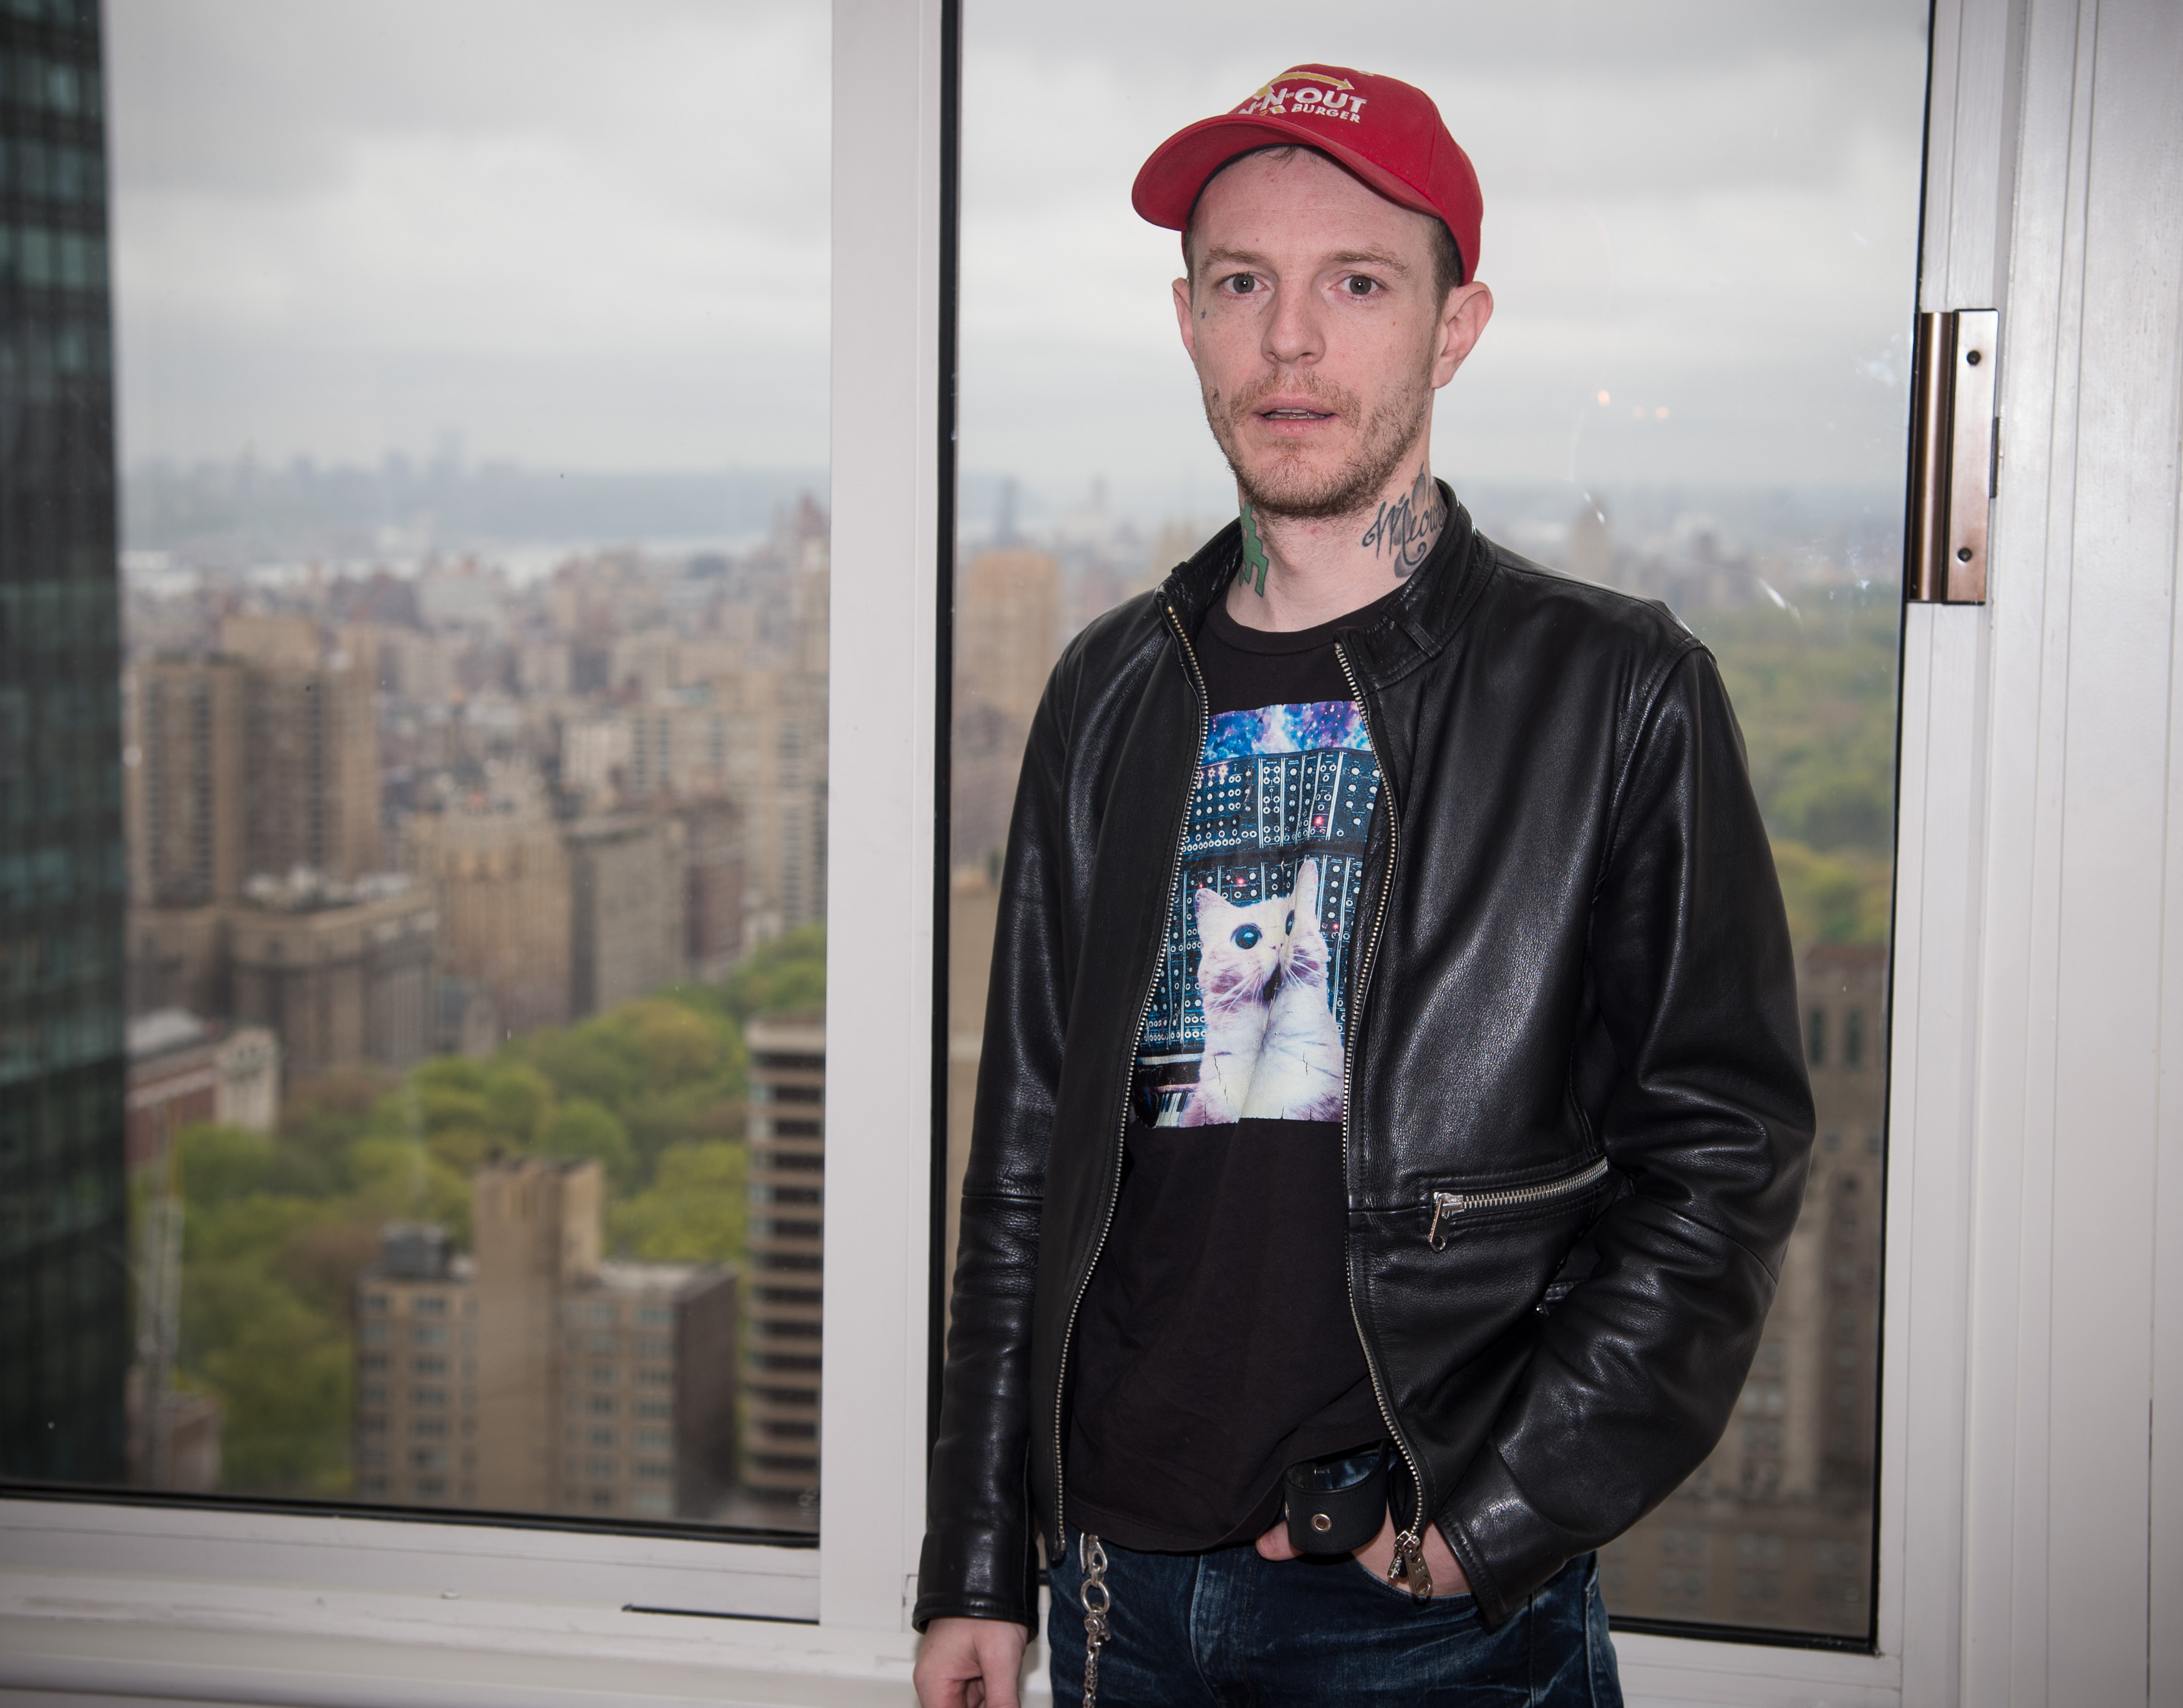 Deadmau5 deletes own Twitch account as he's suspended for using homophobic slur